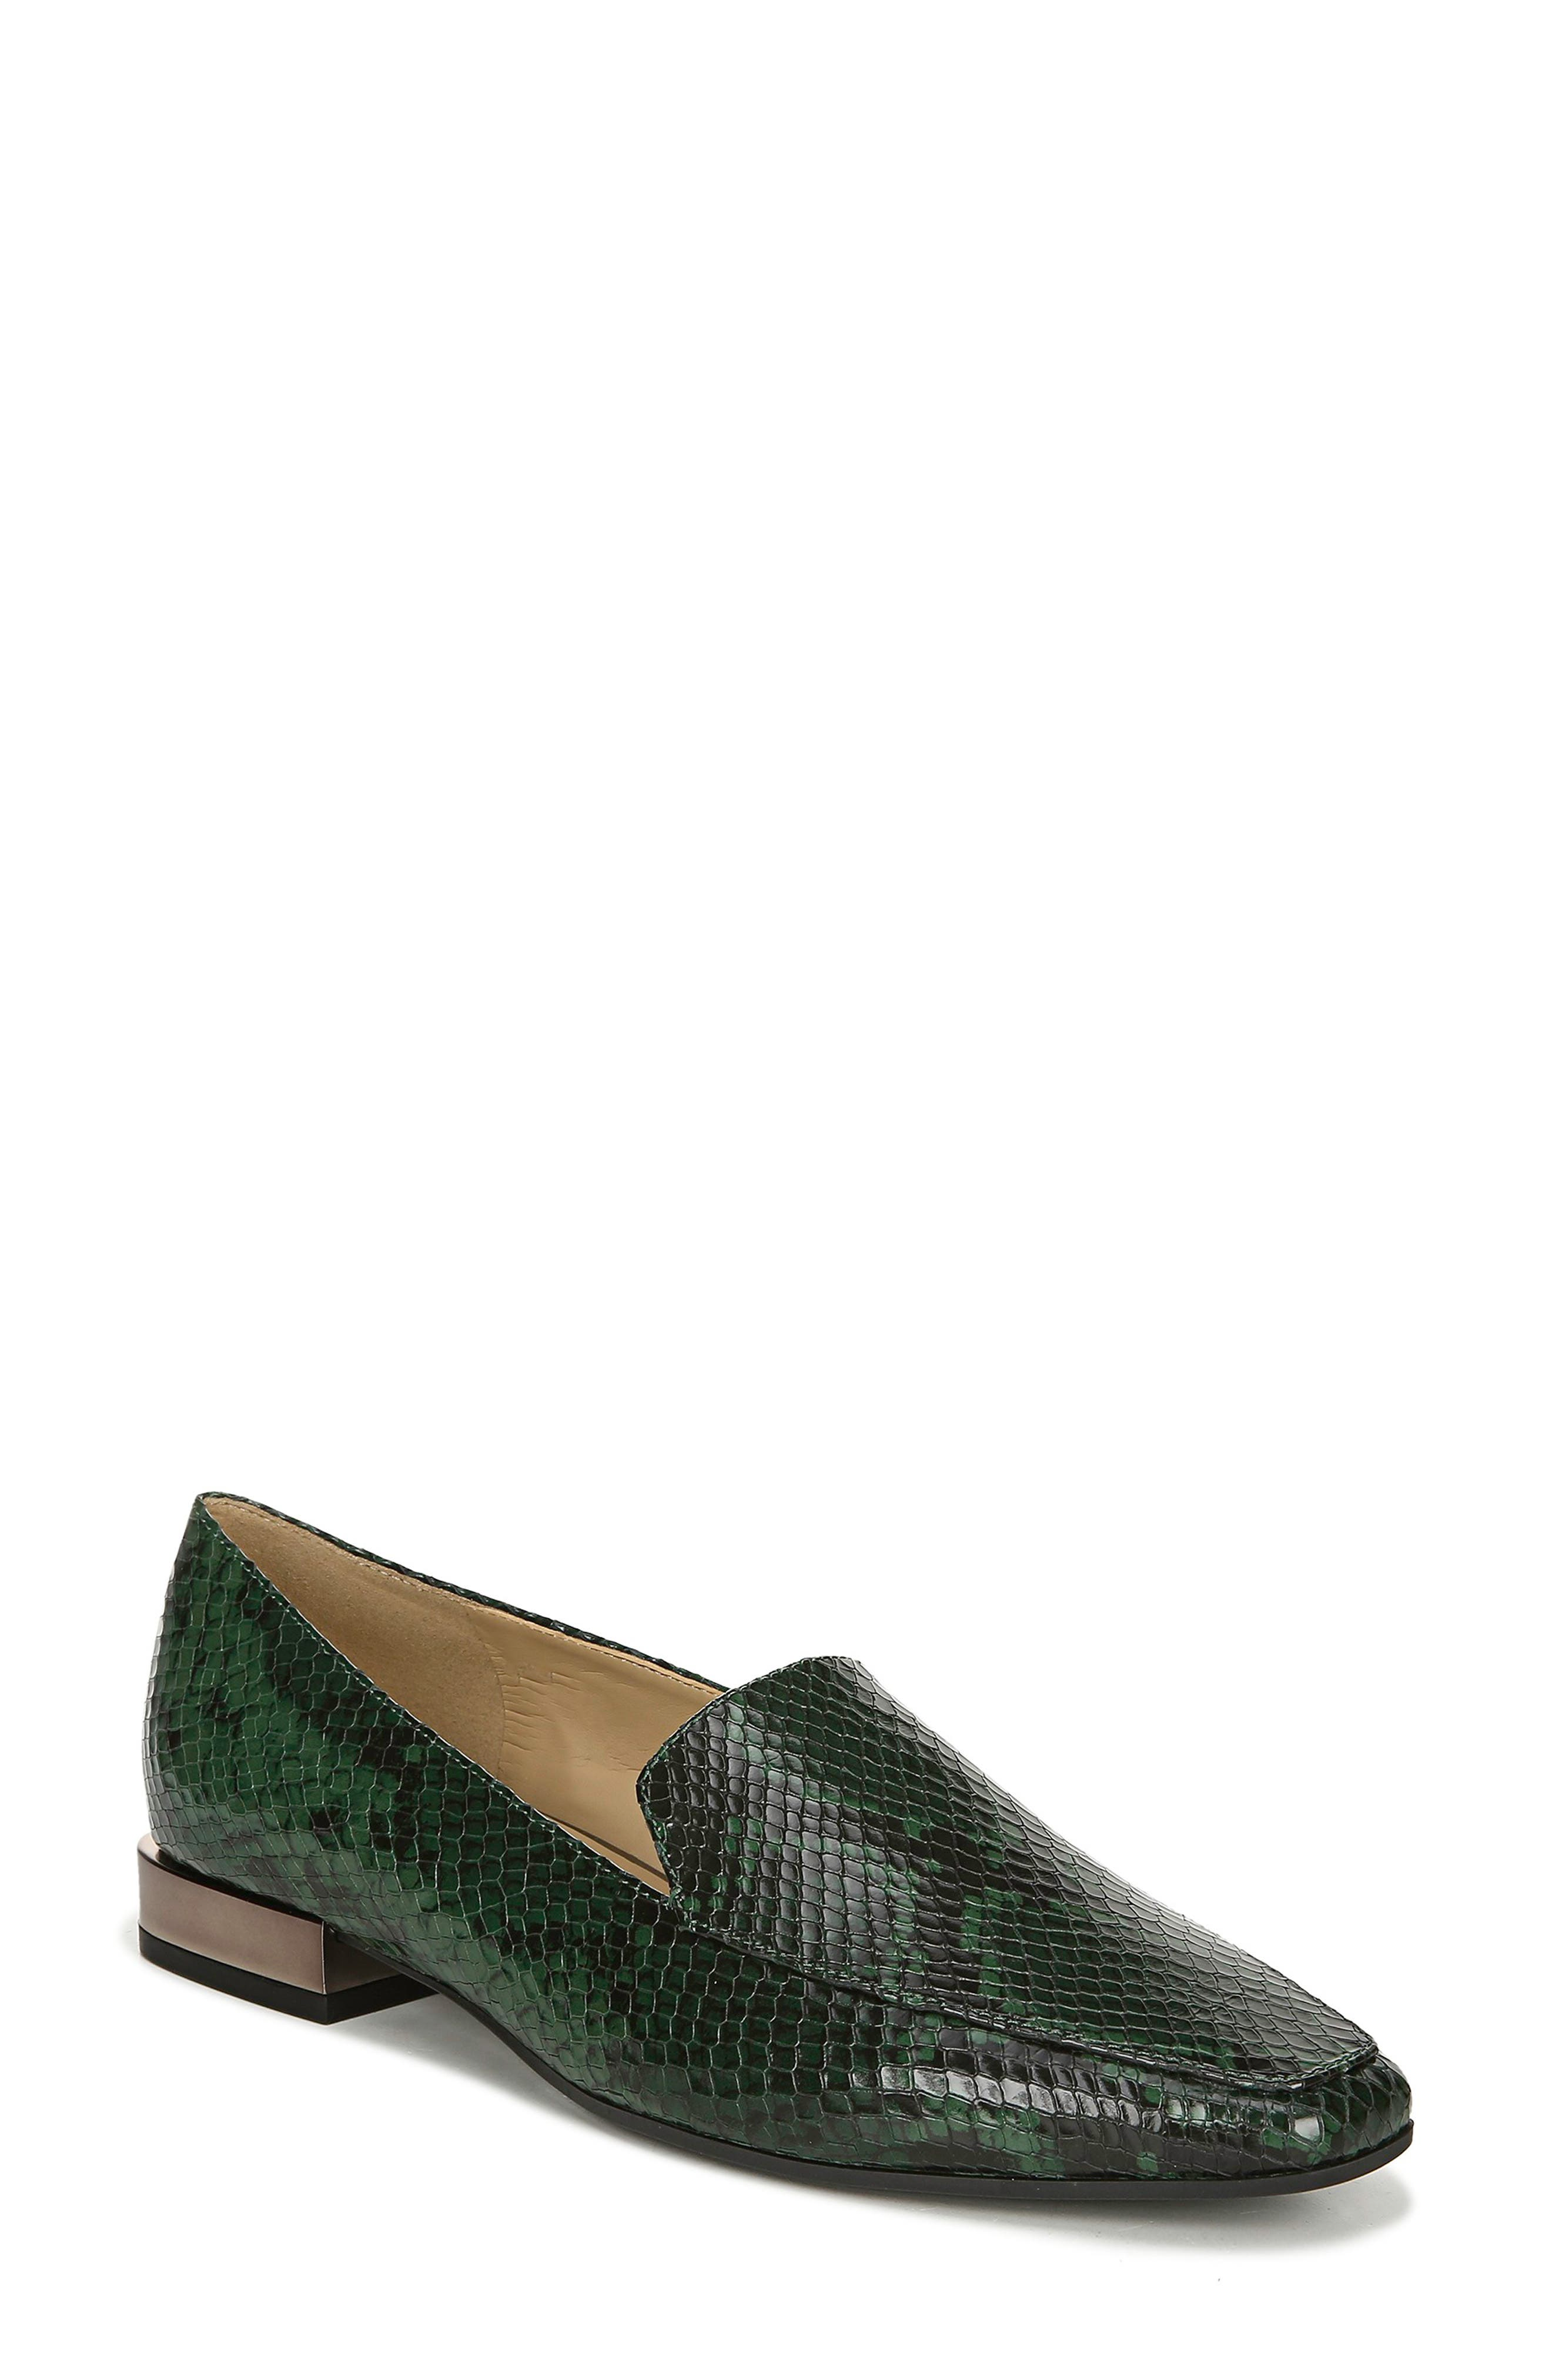 Naturalizer Clea Loafer, Green